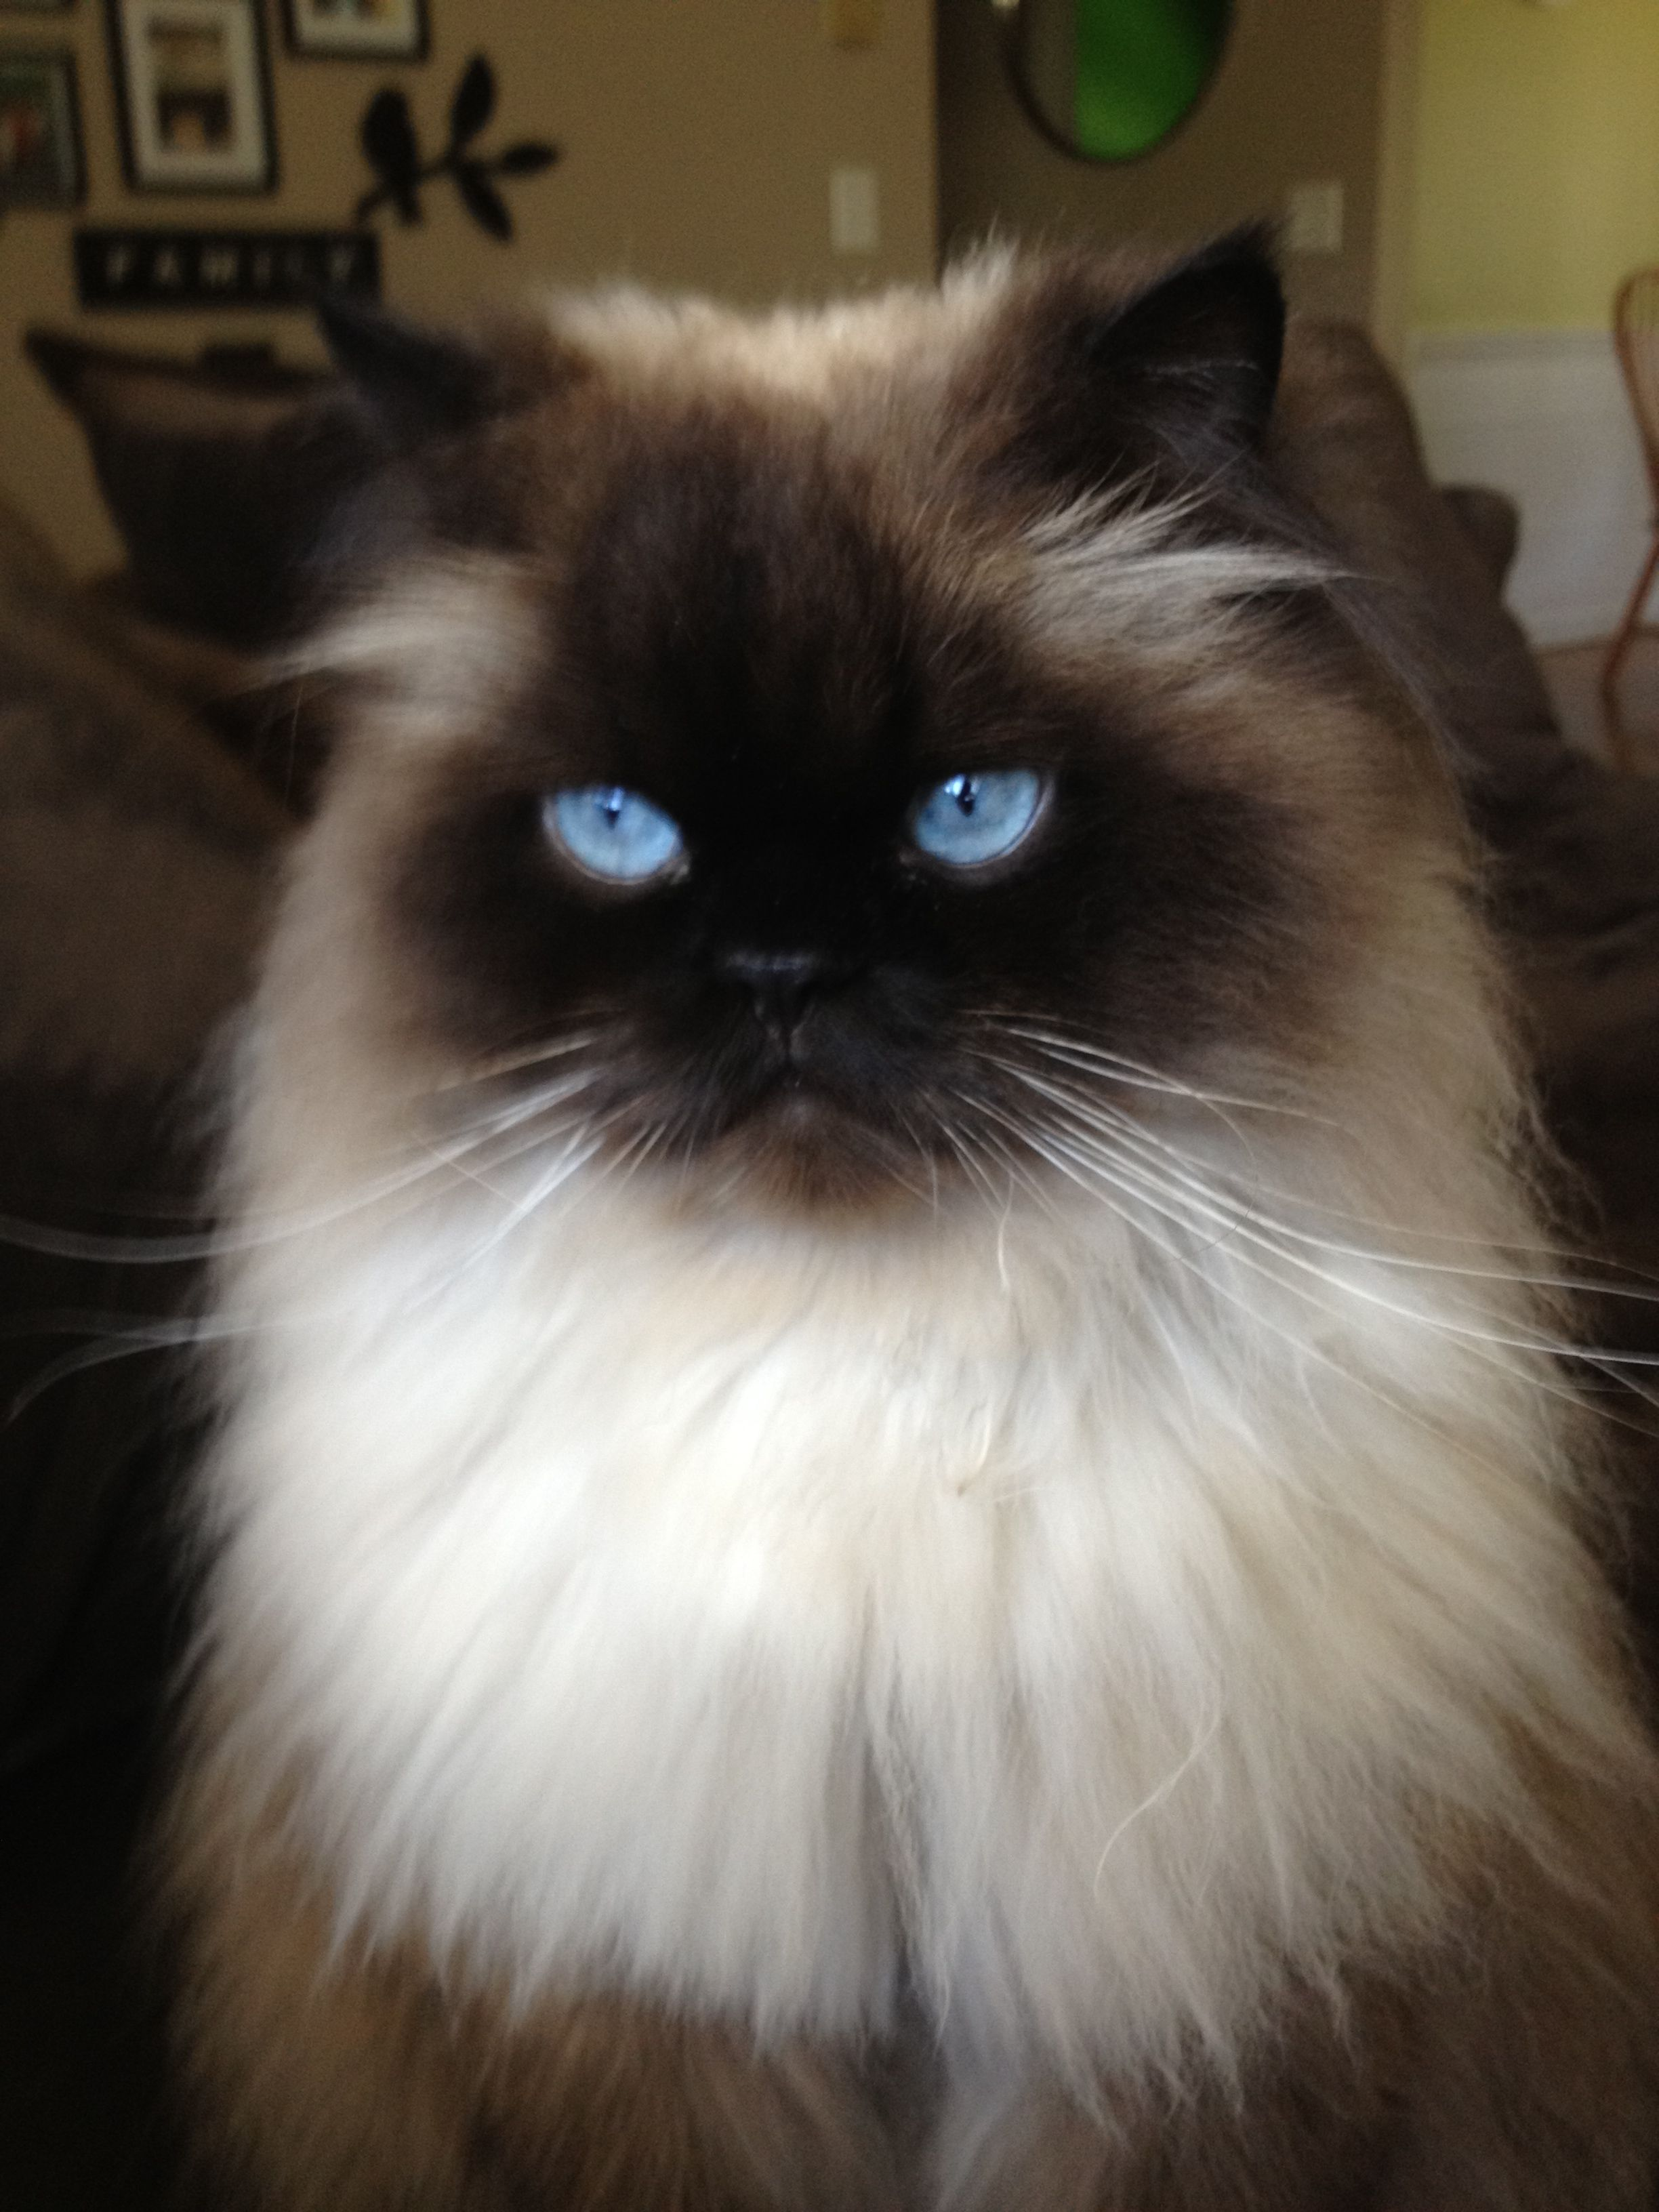 Himalayan cat!!!! That is one handsome guy!!